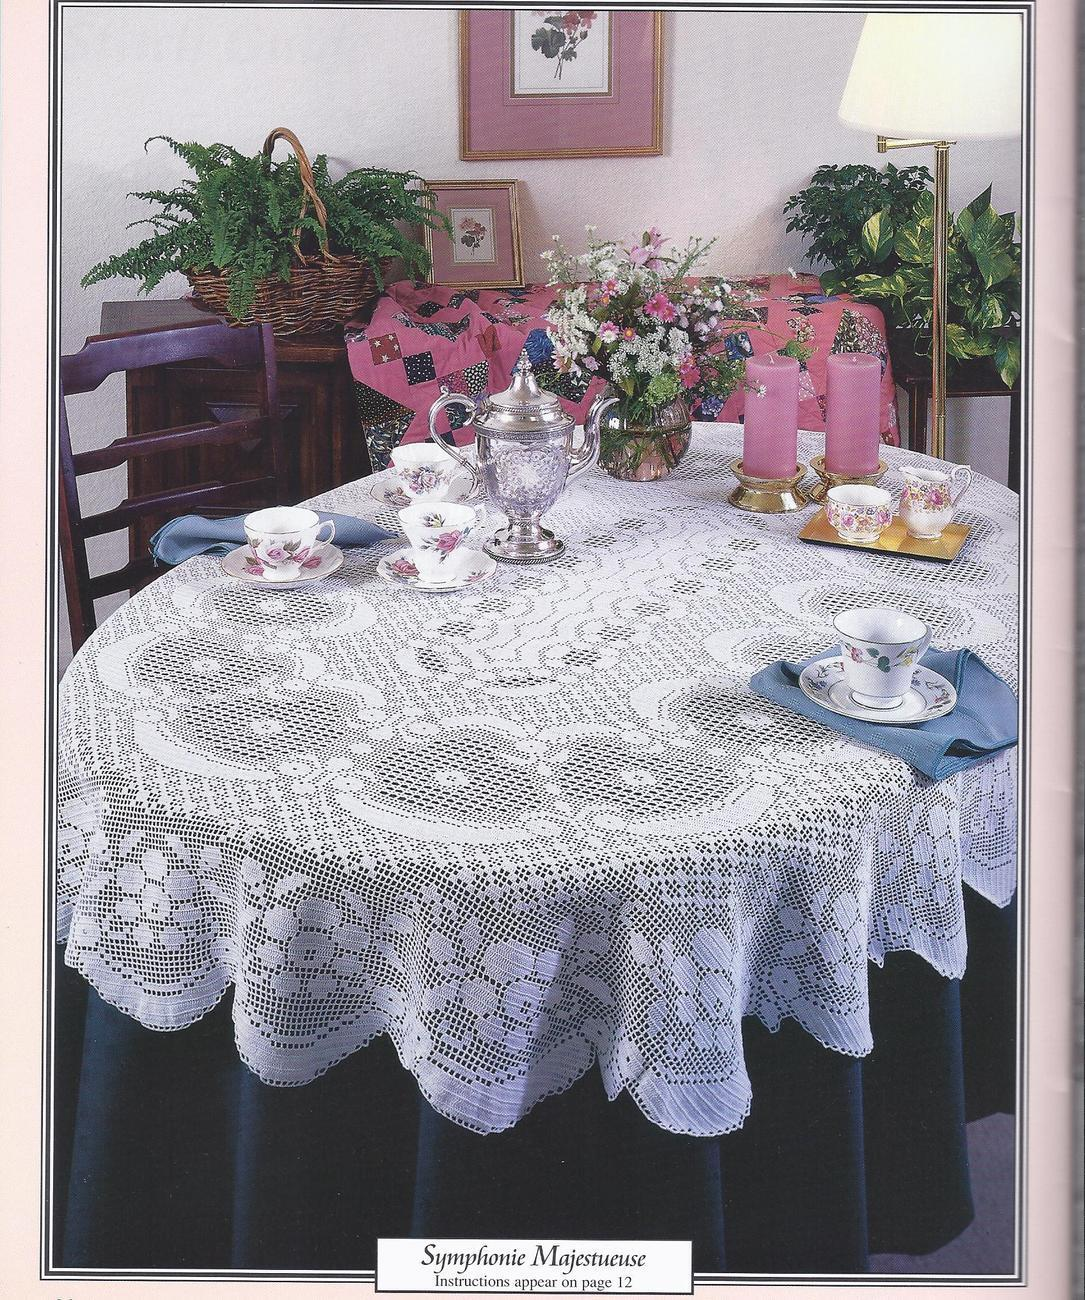 Http Www Bonanza Com Listings Gorgeous Oval Tablecloths Filet Crochet Patterns 5 Designs 87742011